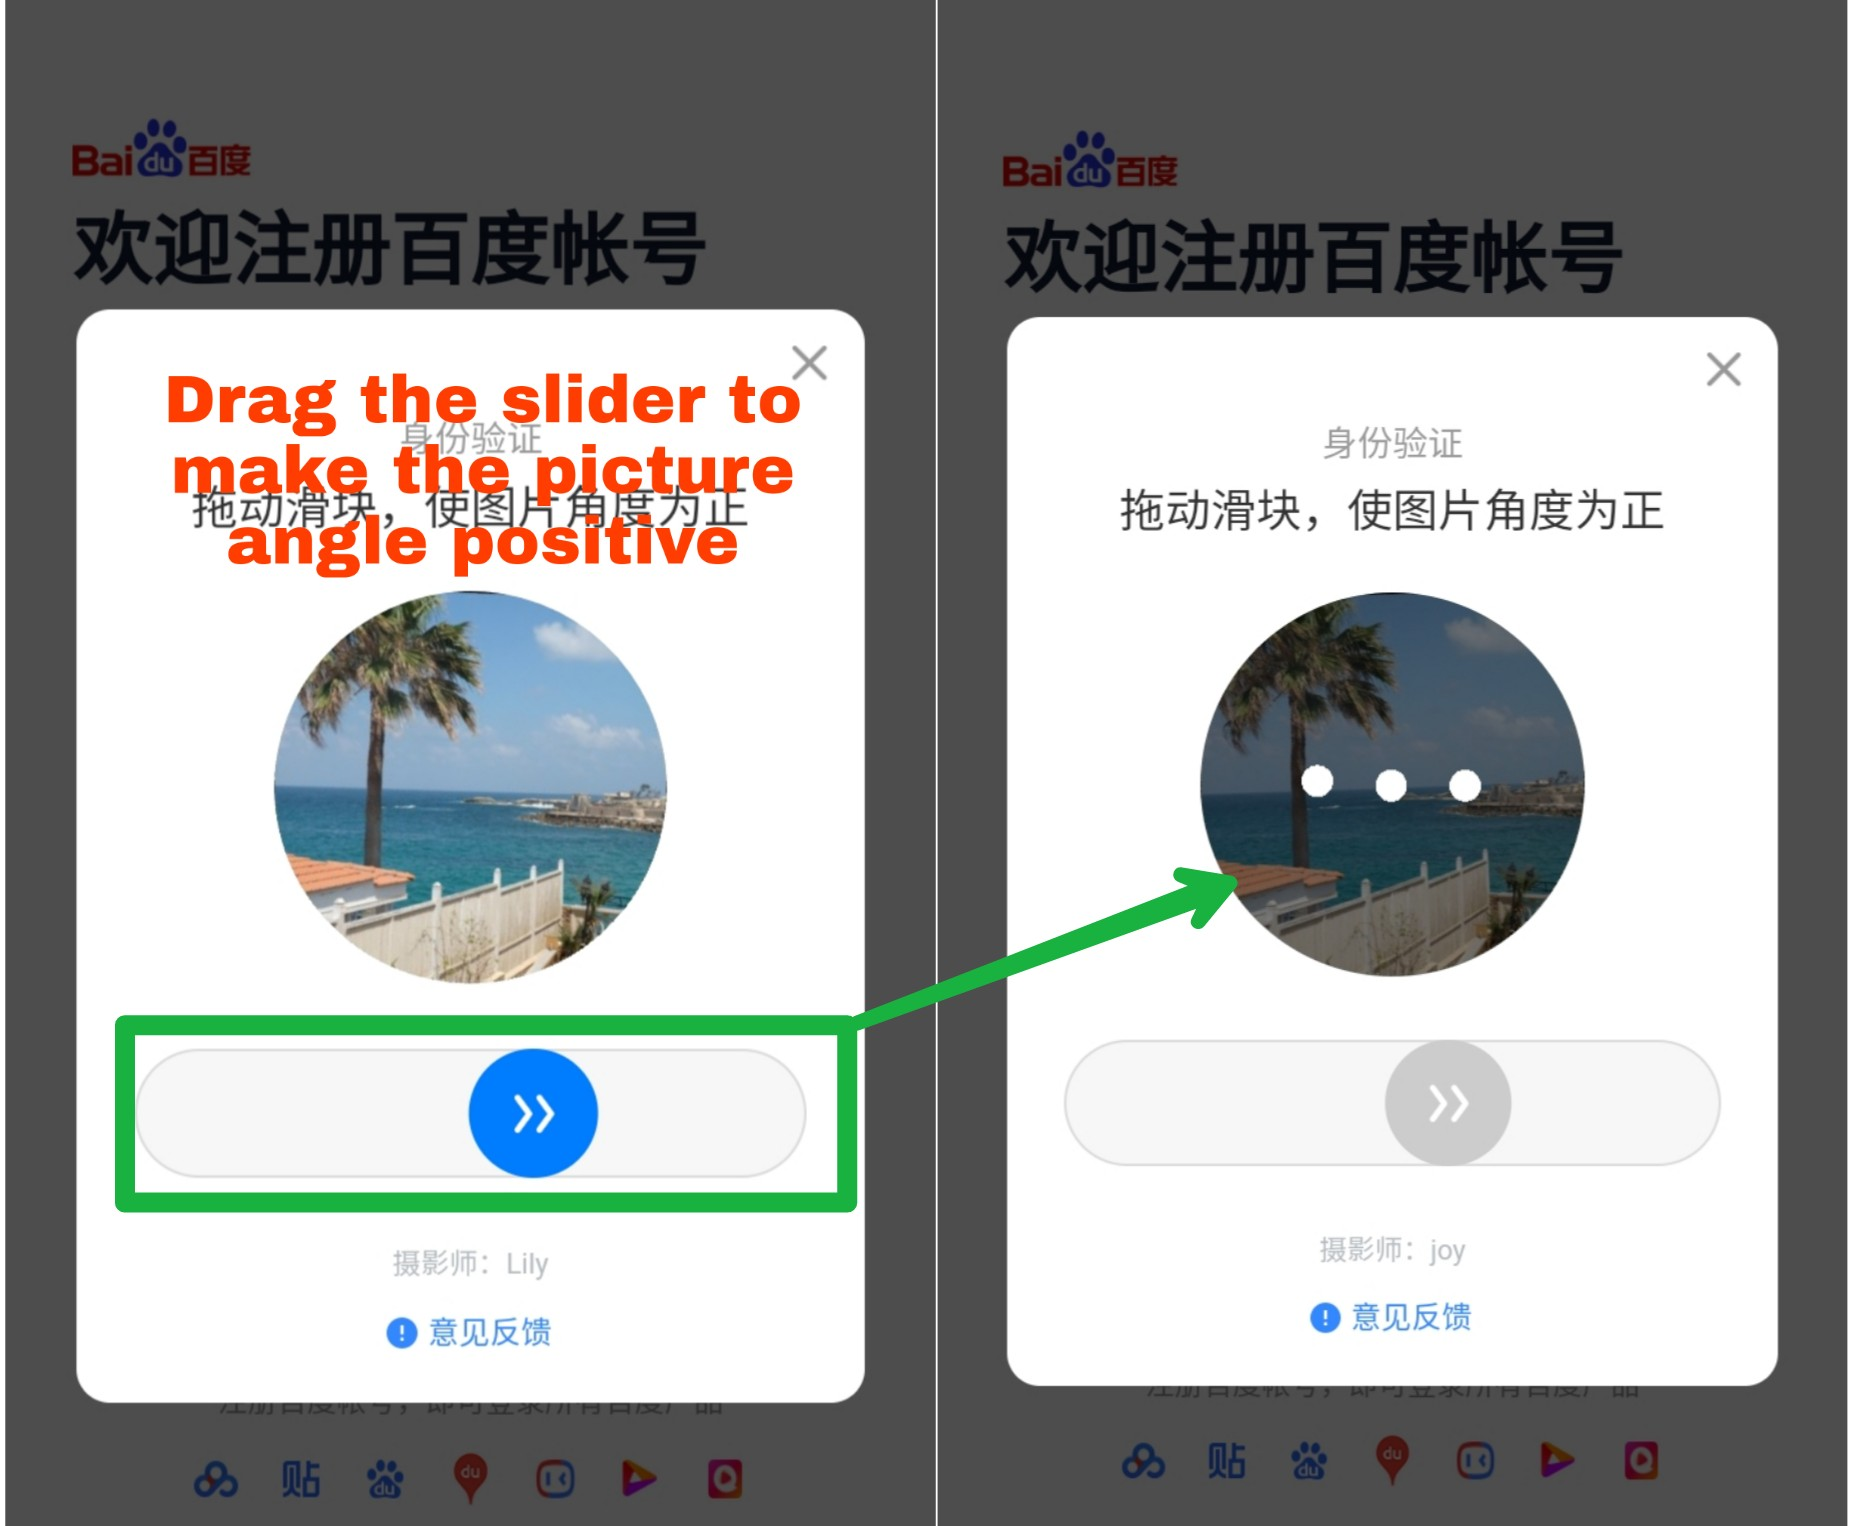 Baidu Verification Process